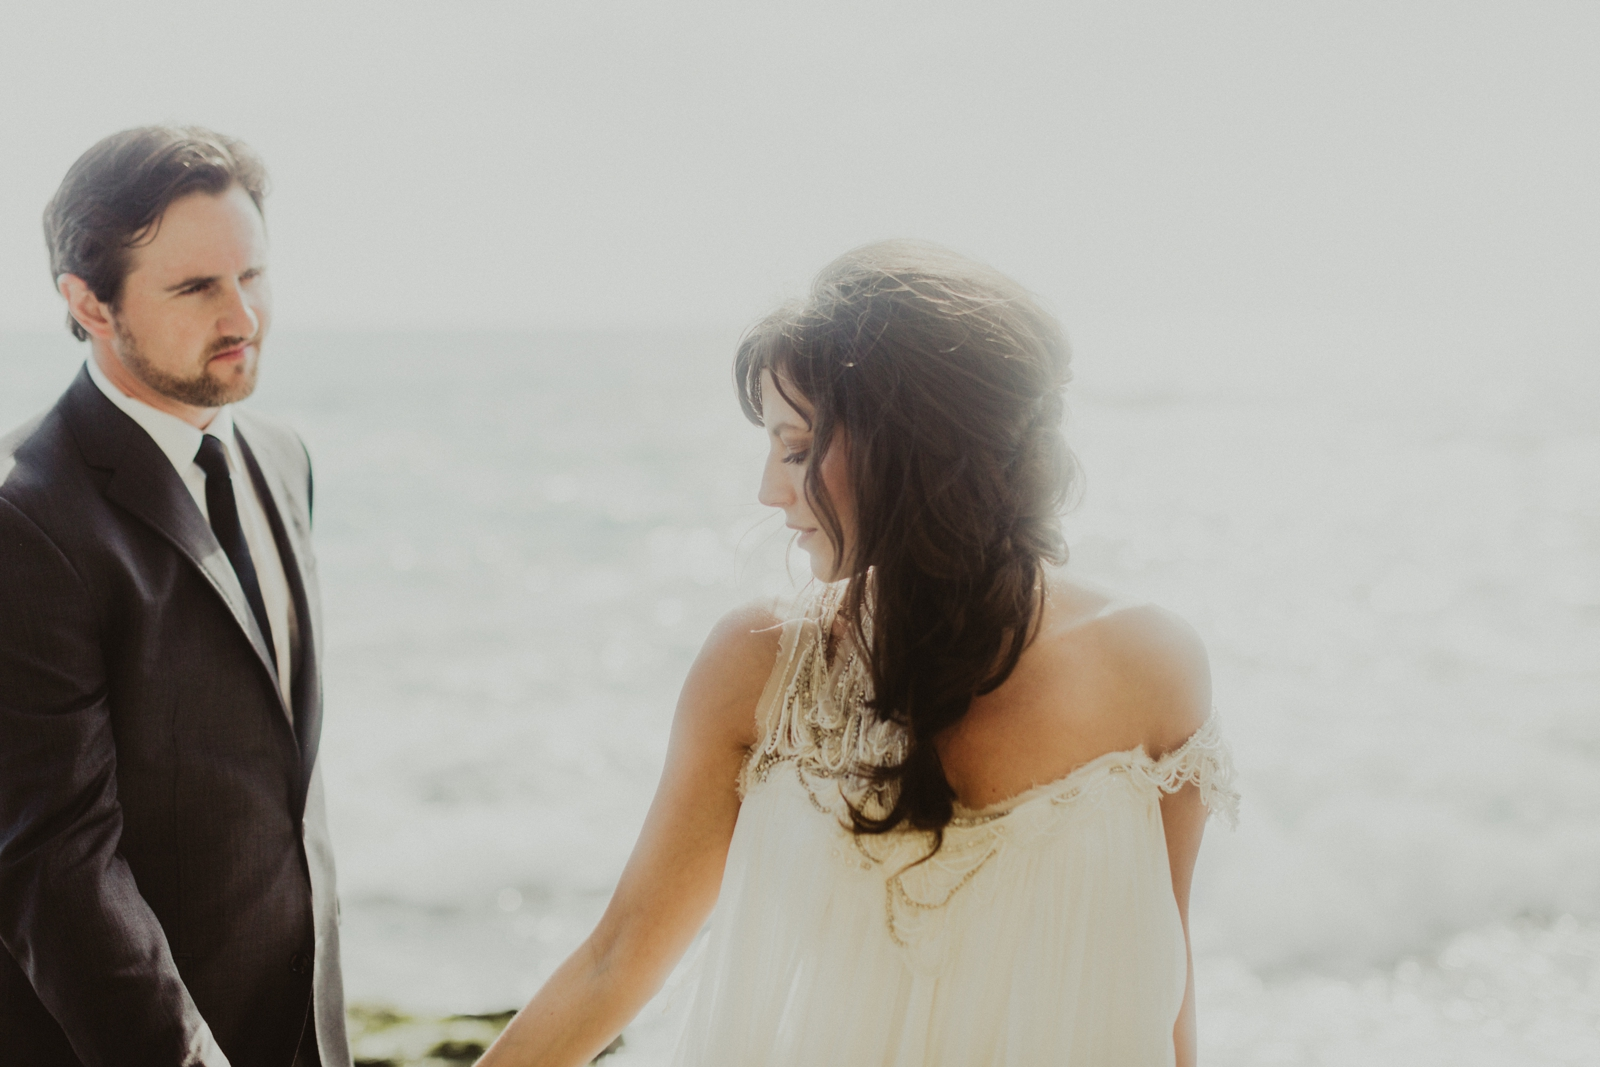 Kevin+Angie-Married-Blog-00028.jpg